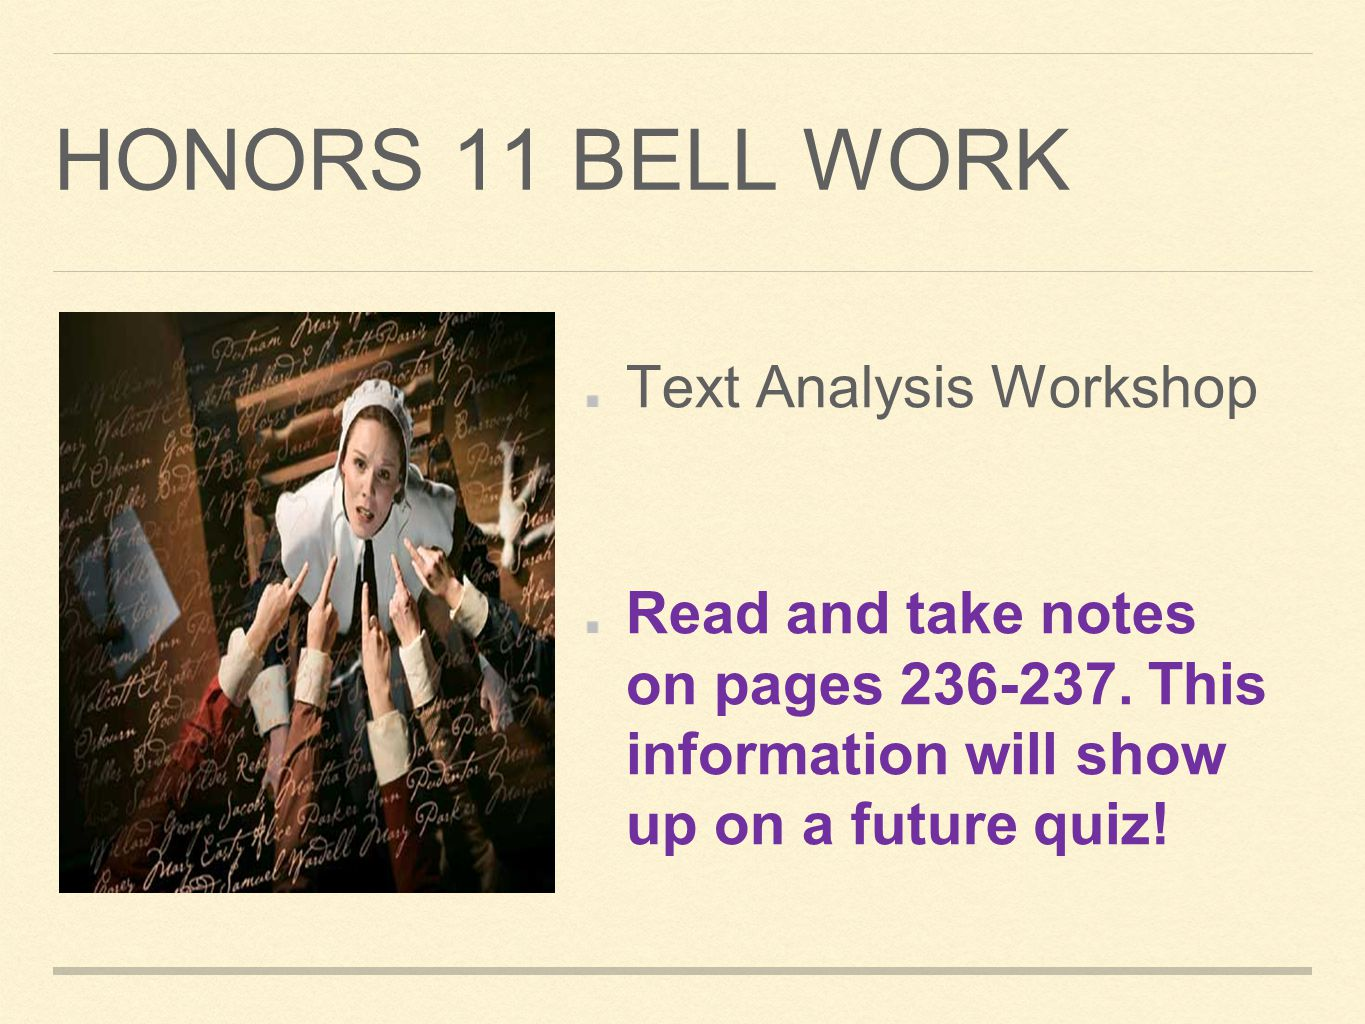 Honors 11 Bell Work Text Analysis Workshop